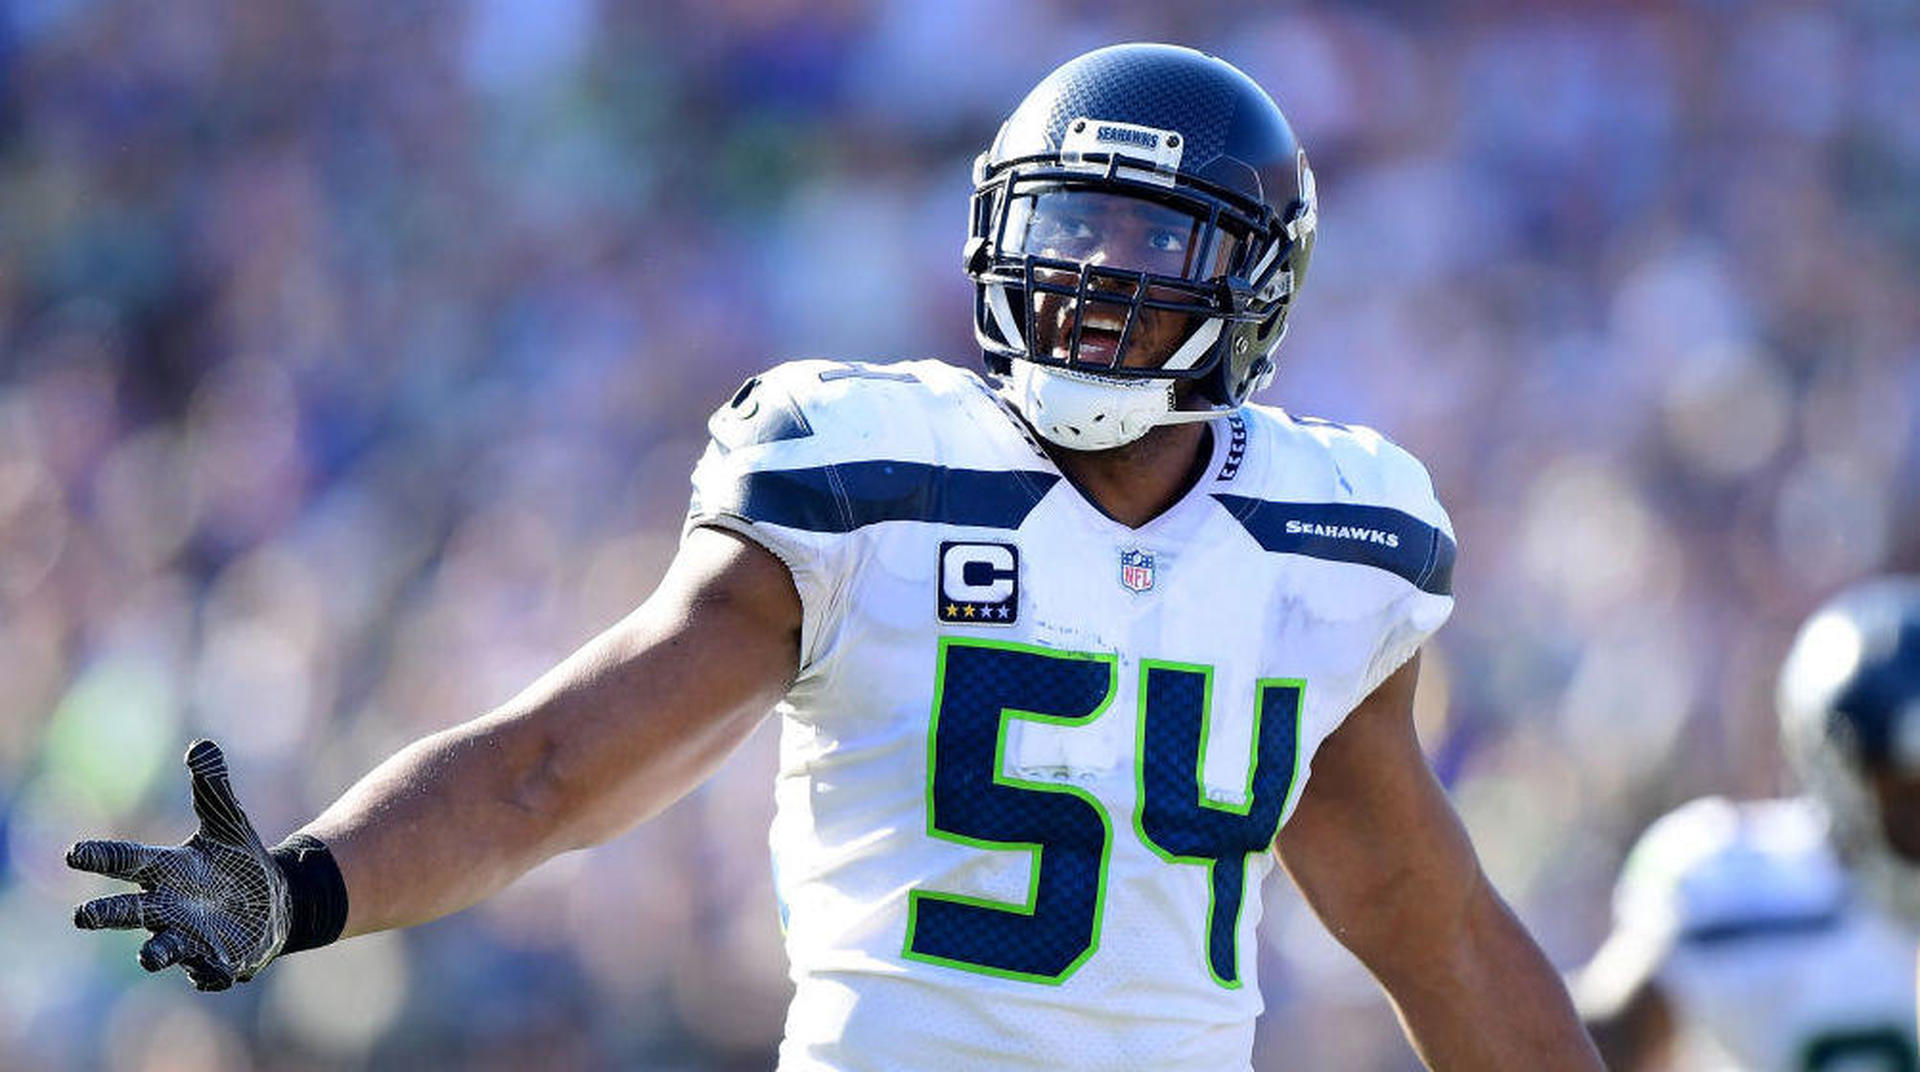 Earl Thomas explains giving middle finger to Pete Carroll after injury last year, says Carroll 'won'